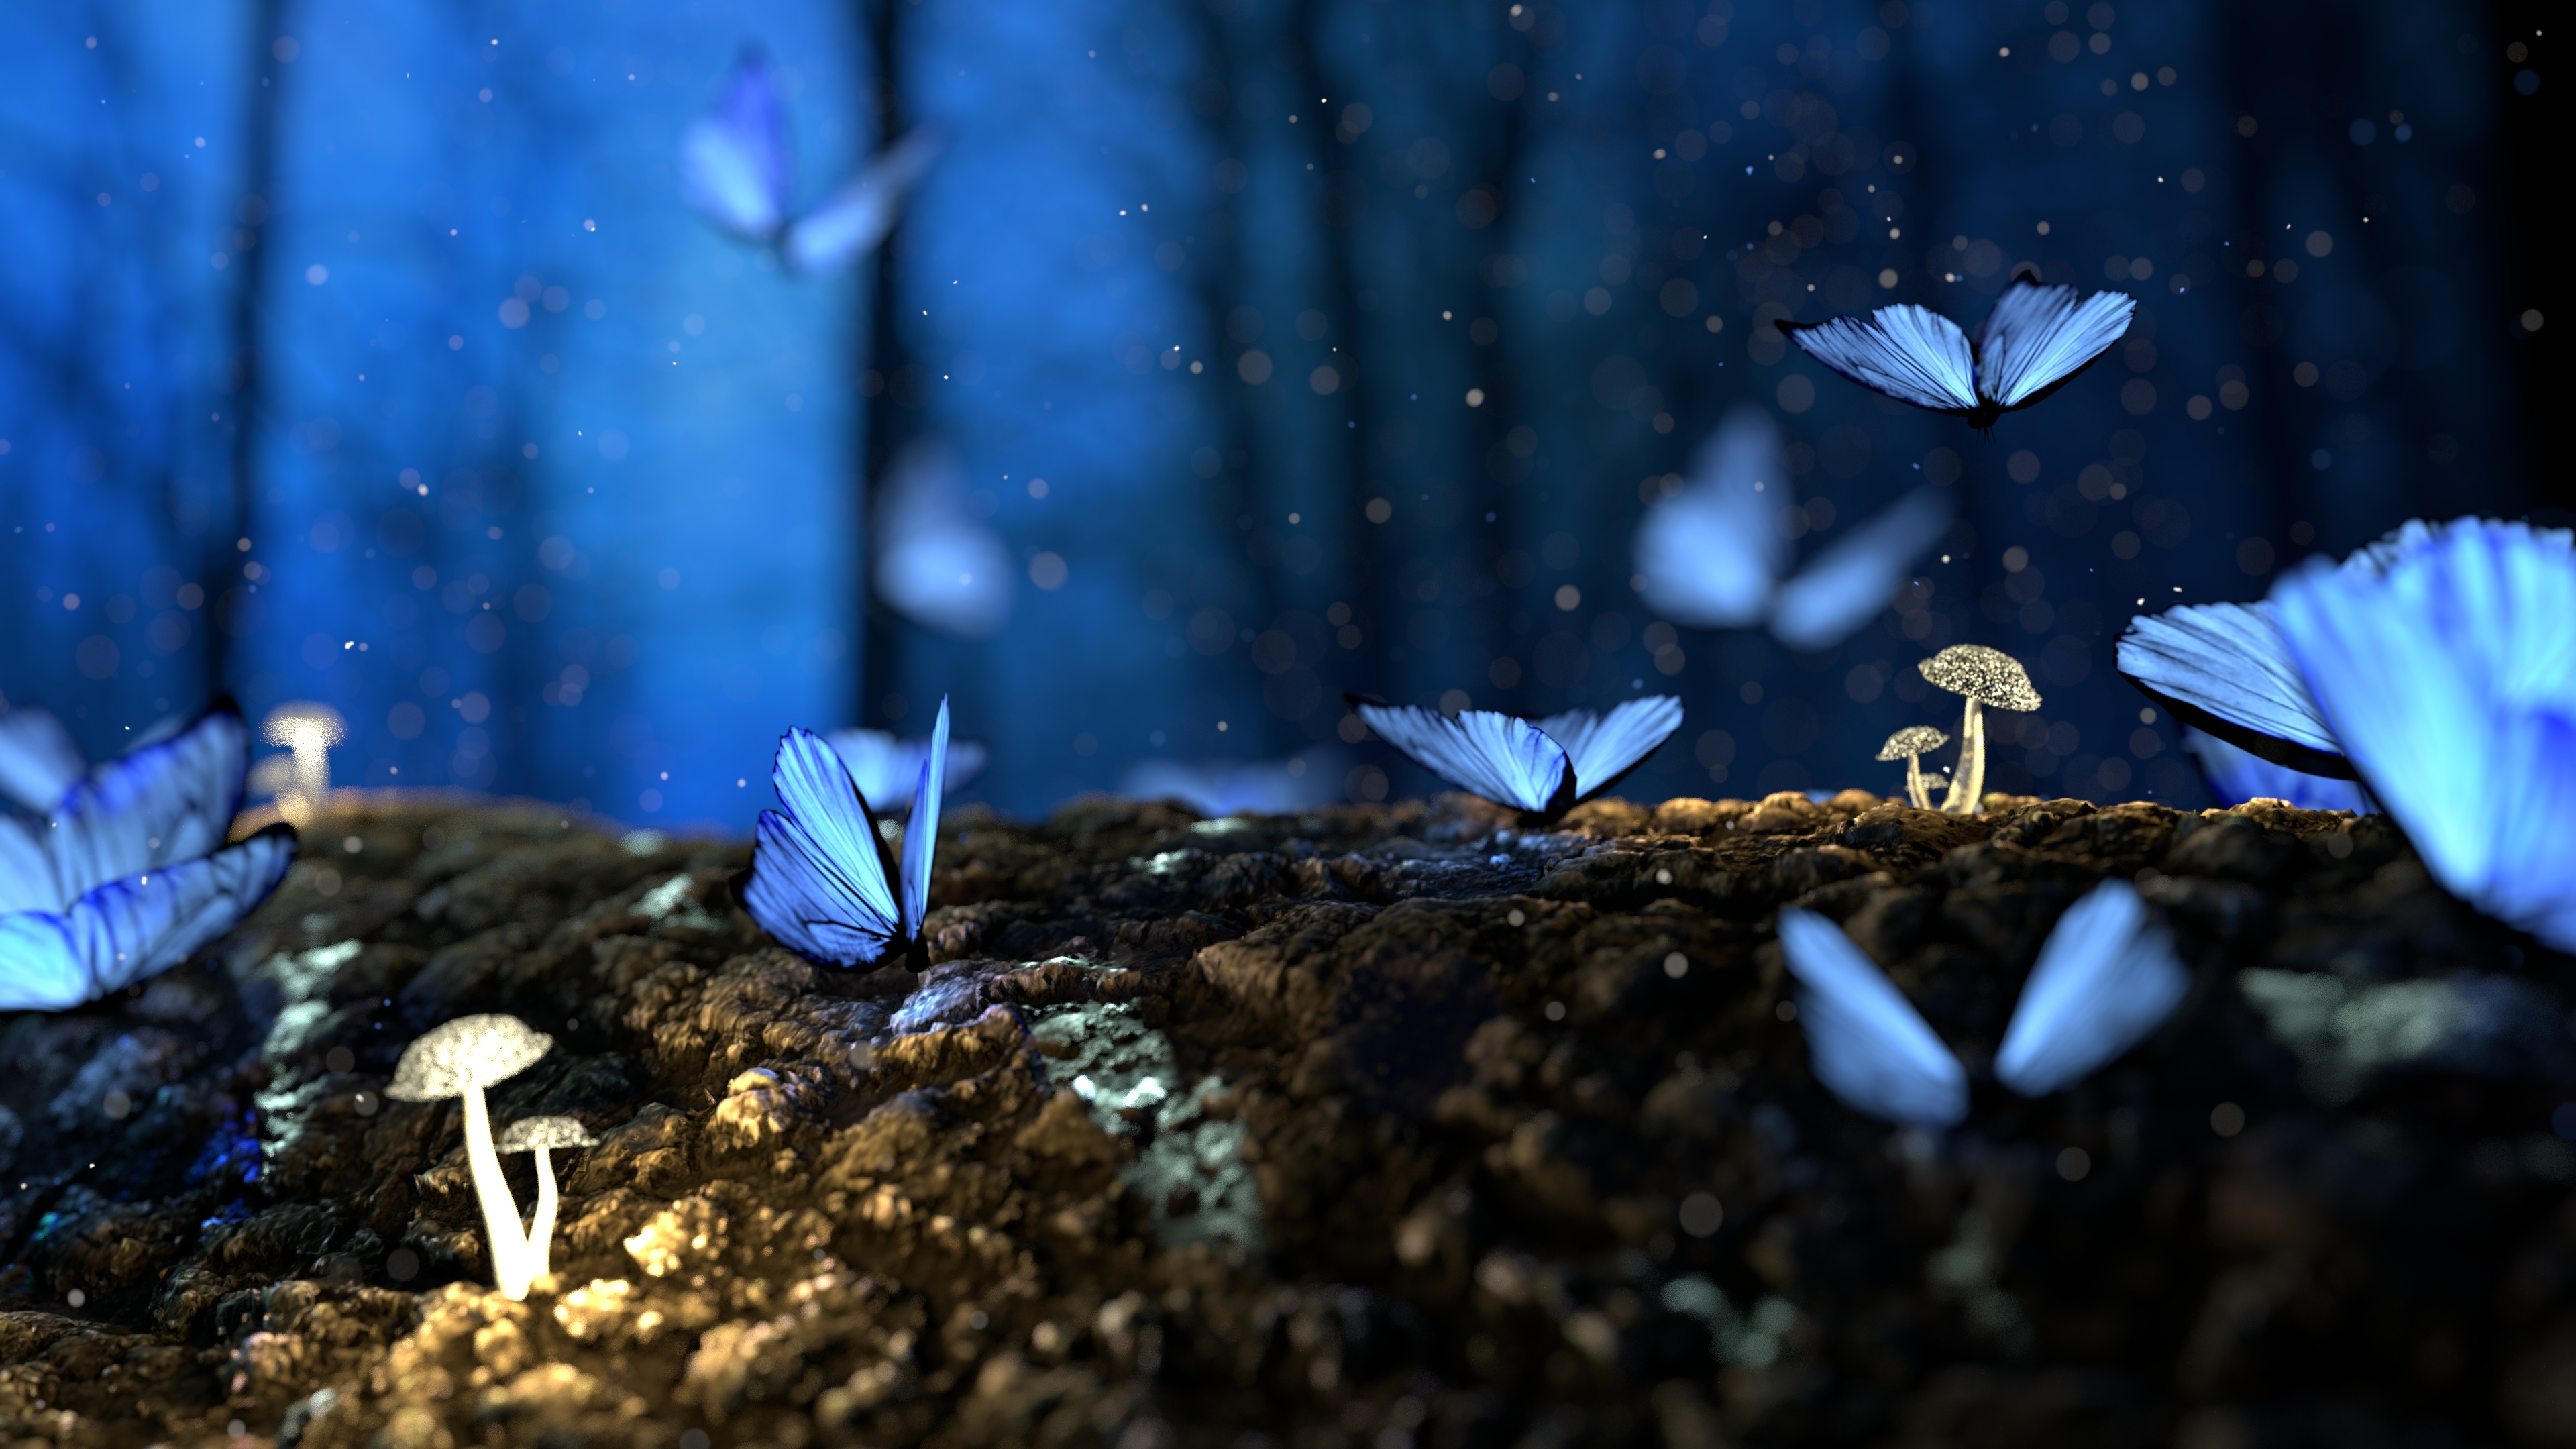 butterfly mushrooms forest fantasy 1540750952 - Butterfly Mushrooms Forest Fantasy - mushroom wallpapers, hd-wallpapers, forest wallpapers, fantasy wallpapers, digital art wallpapers, butterfly wallpapers, artist wallpapers, 4k-wallpapers